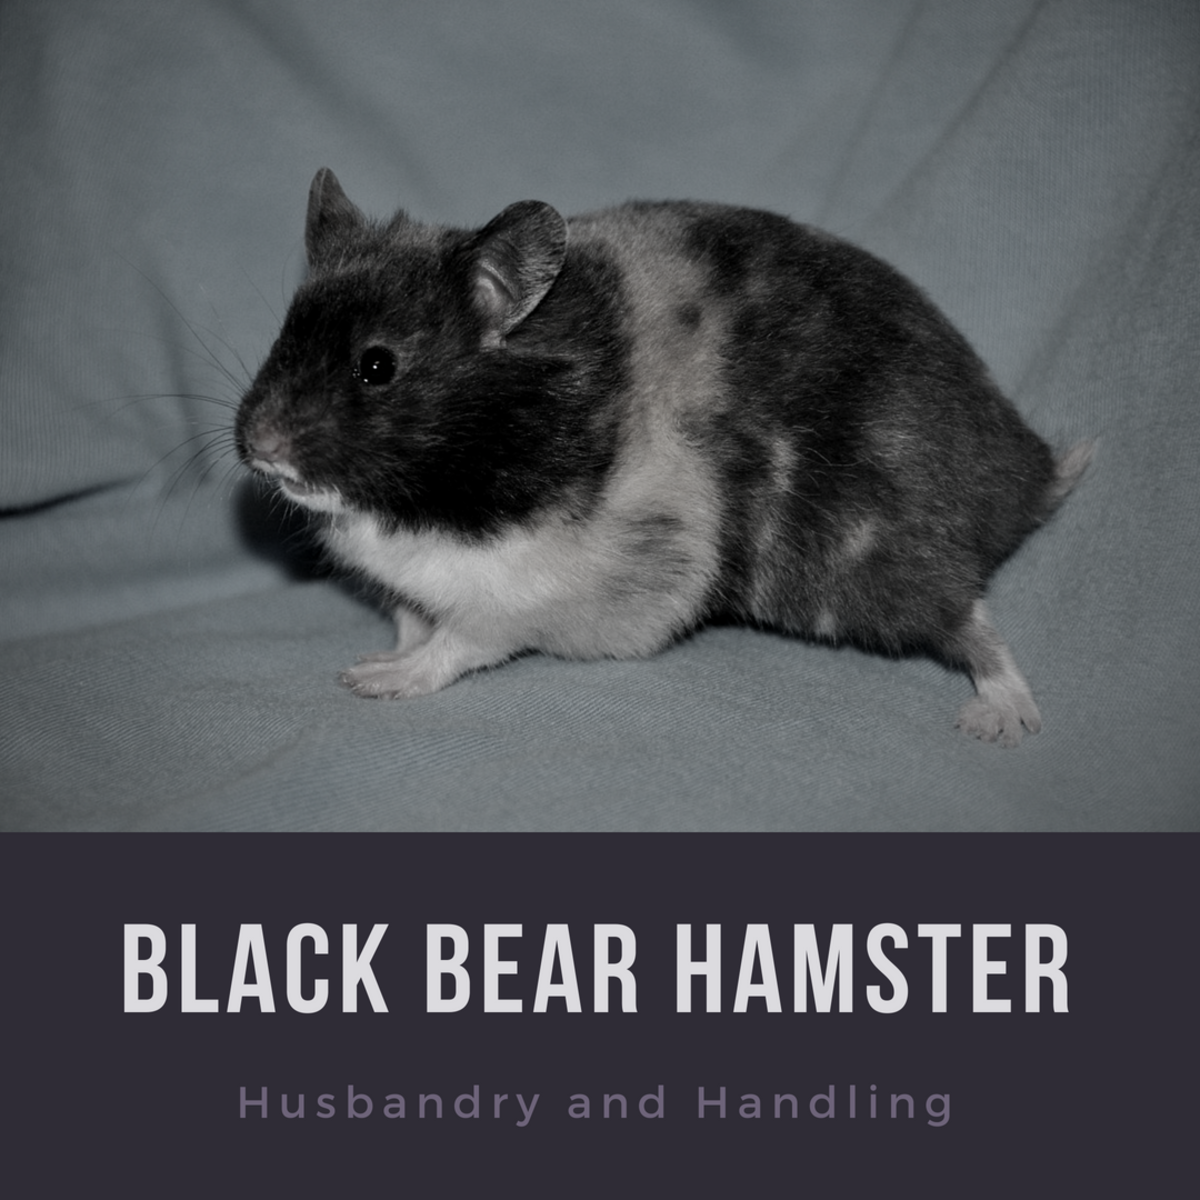 How to Care for and Raise Black Bear Hamsters